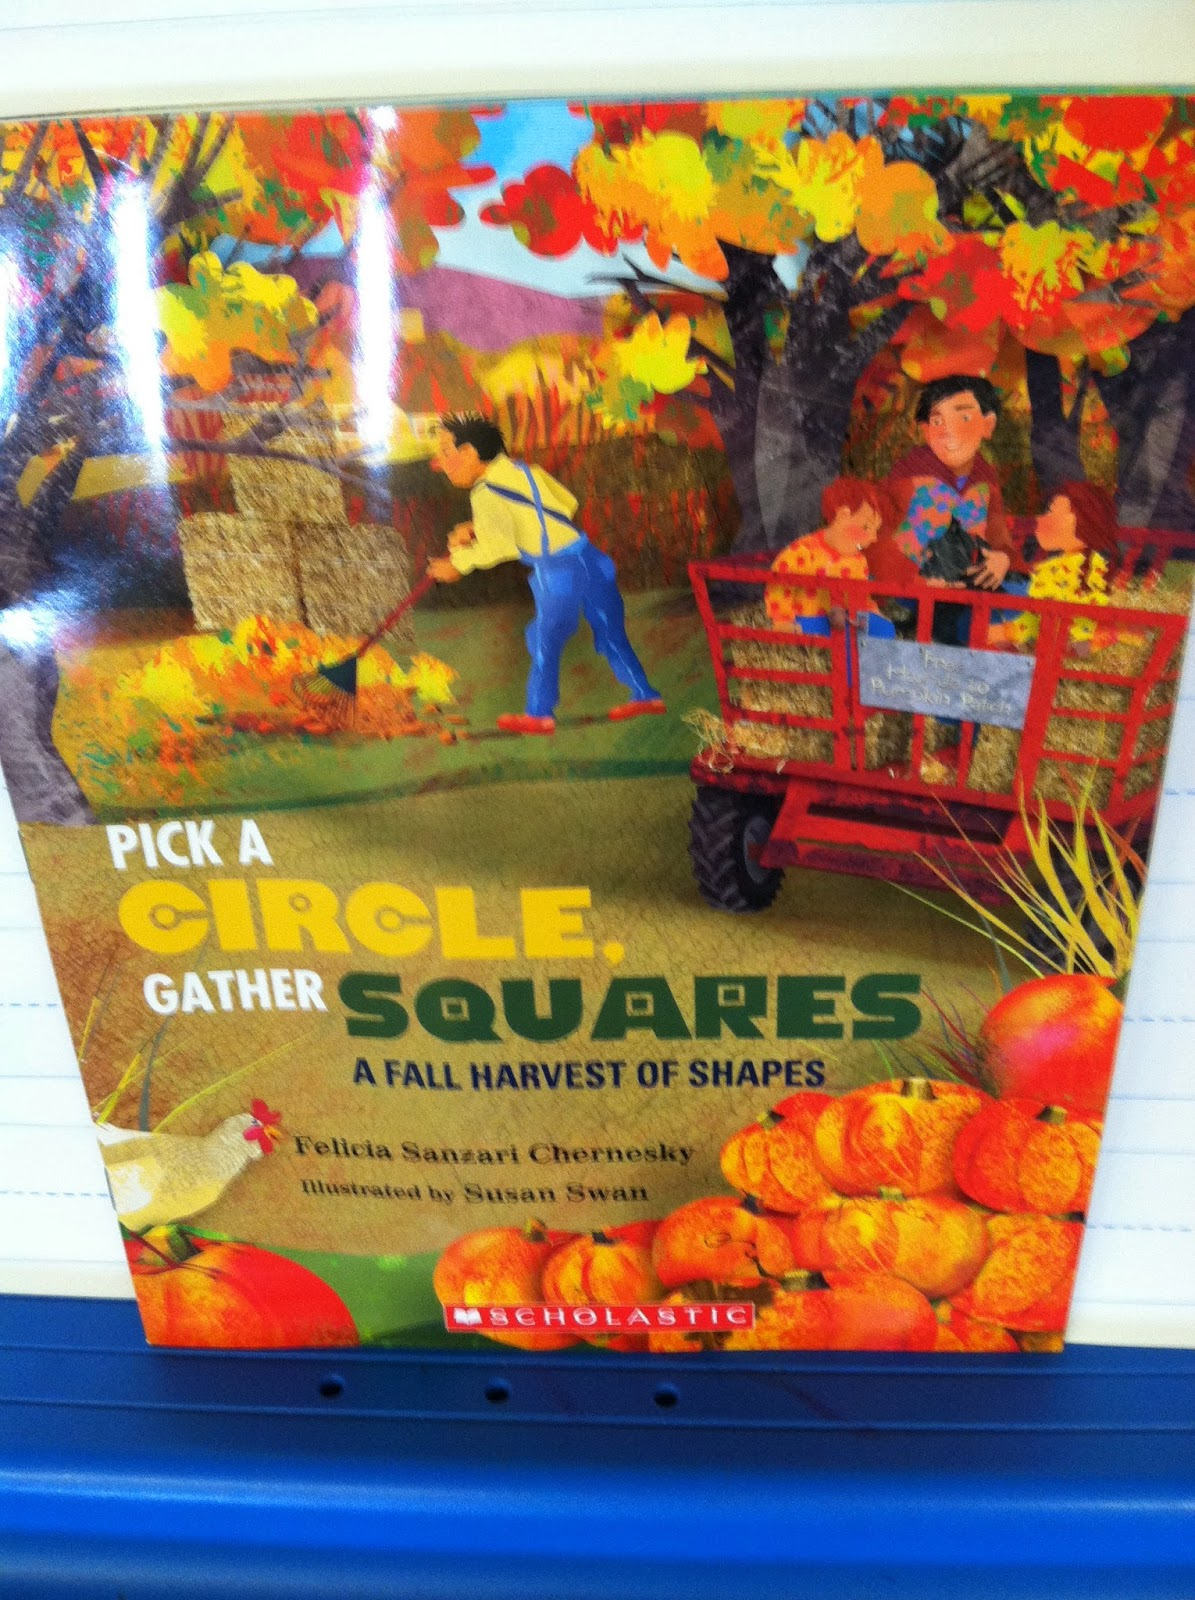 http://www.amazon.com/Pick-Circle-Gather-Squares-Harvest/dp/0807565385